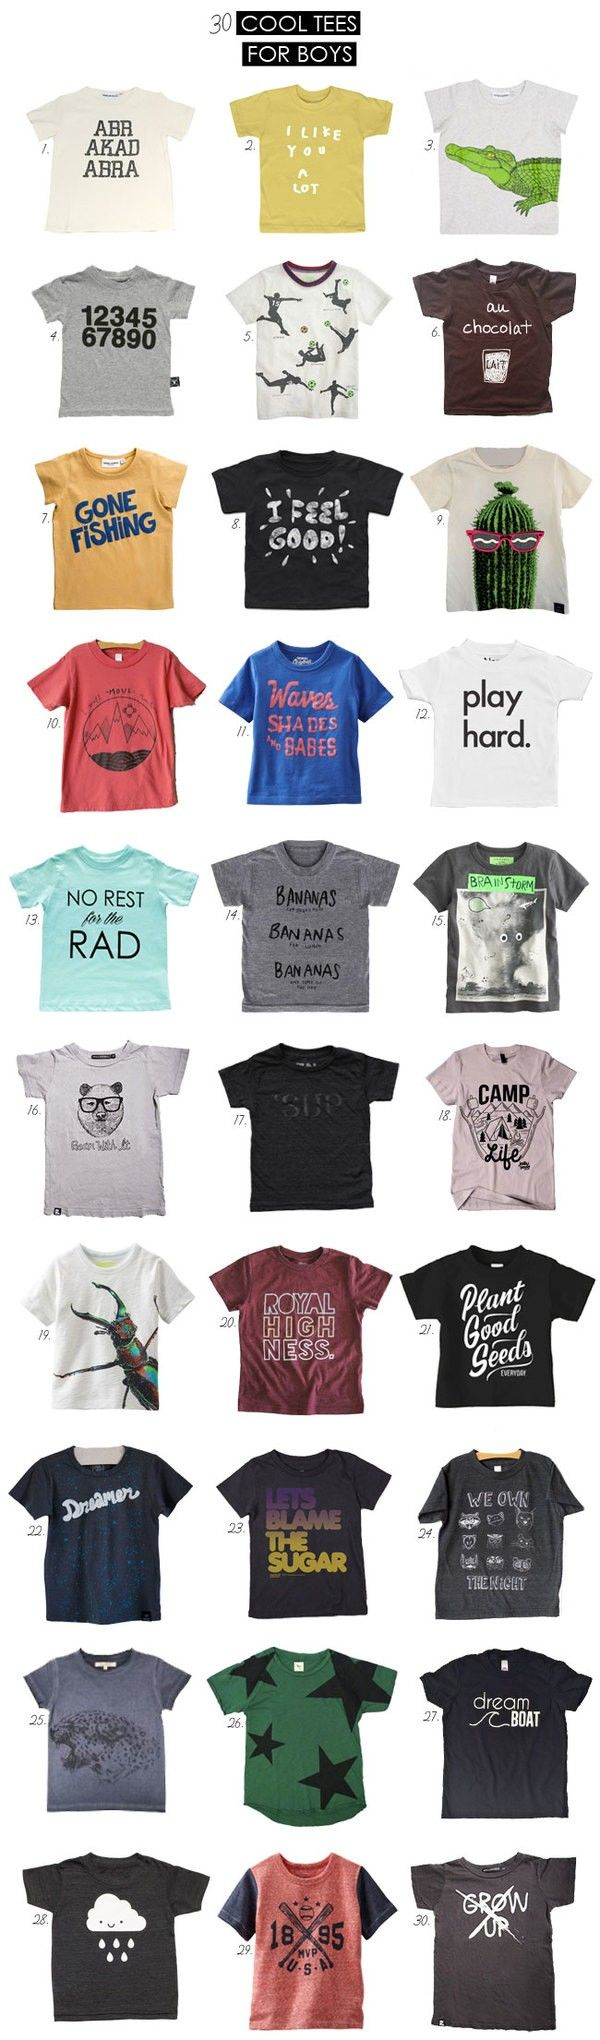 Big list of cool tees for boys